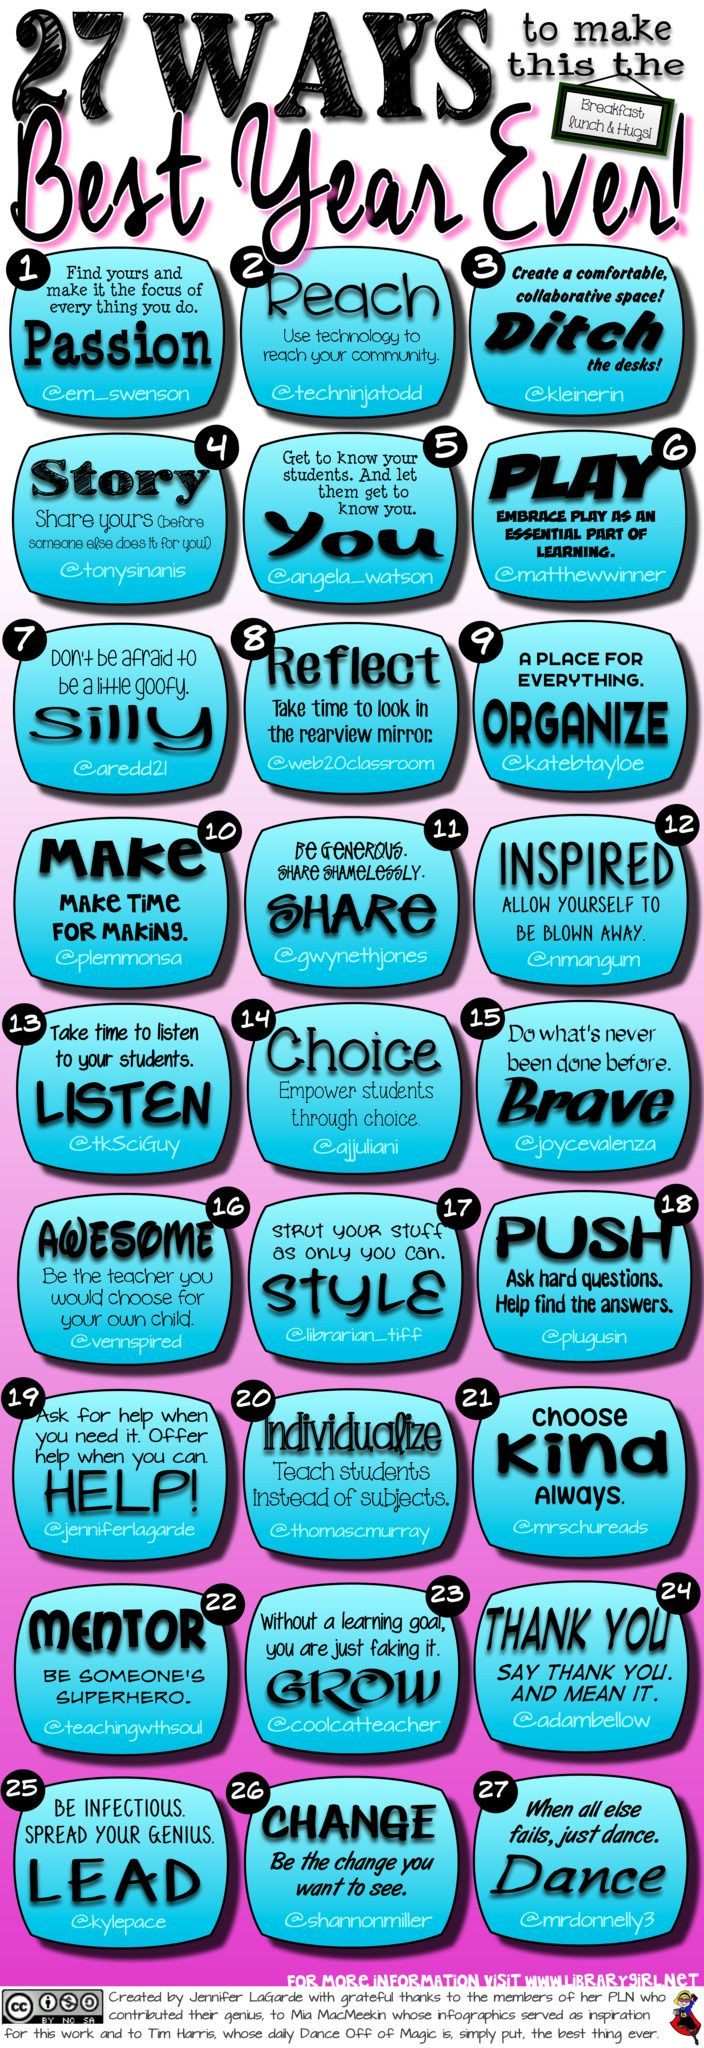 best images about build your pln connect not just a great list of ways to build your pln and develop relationships but